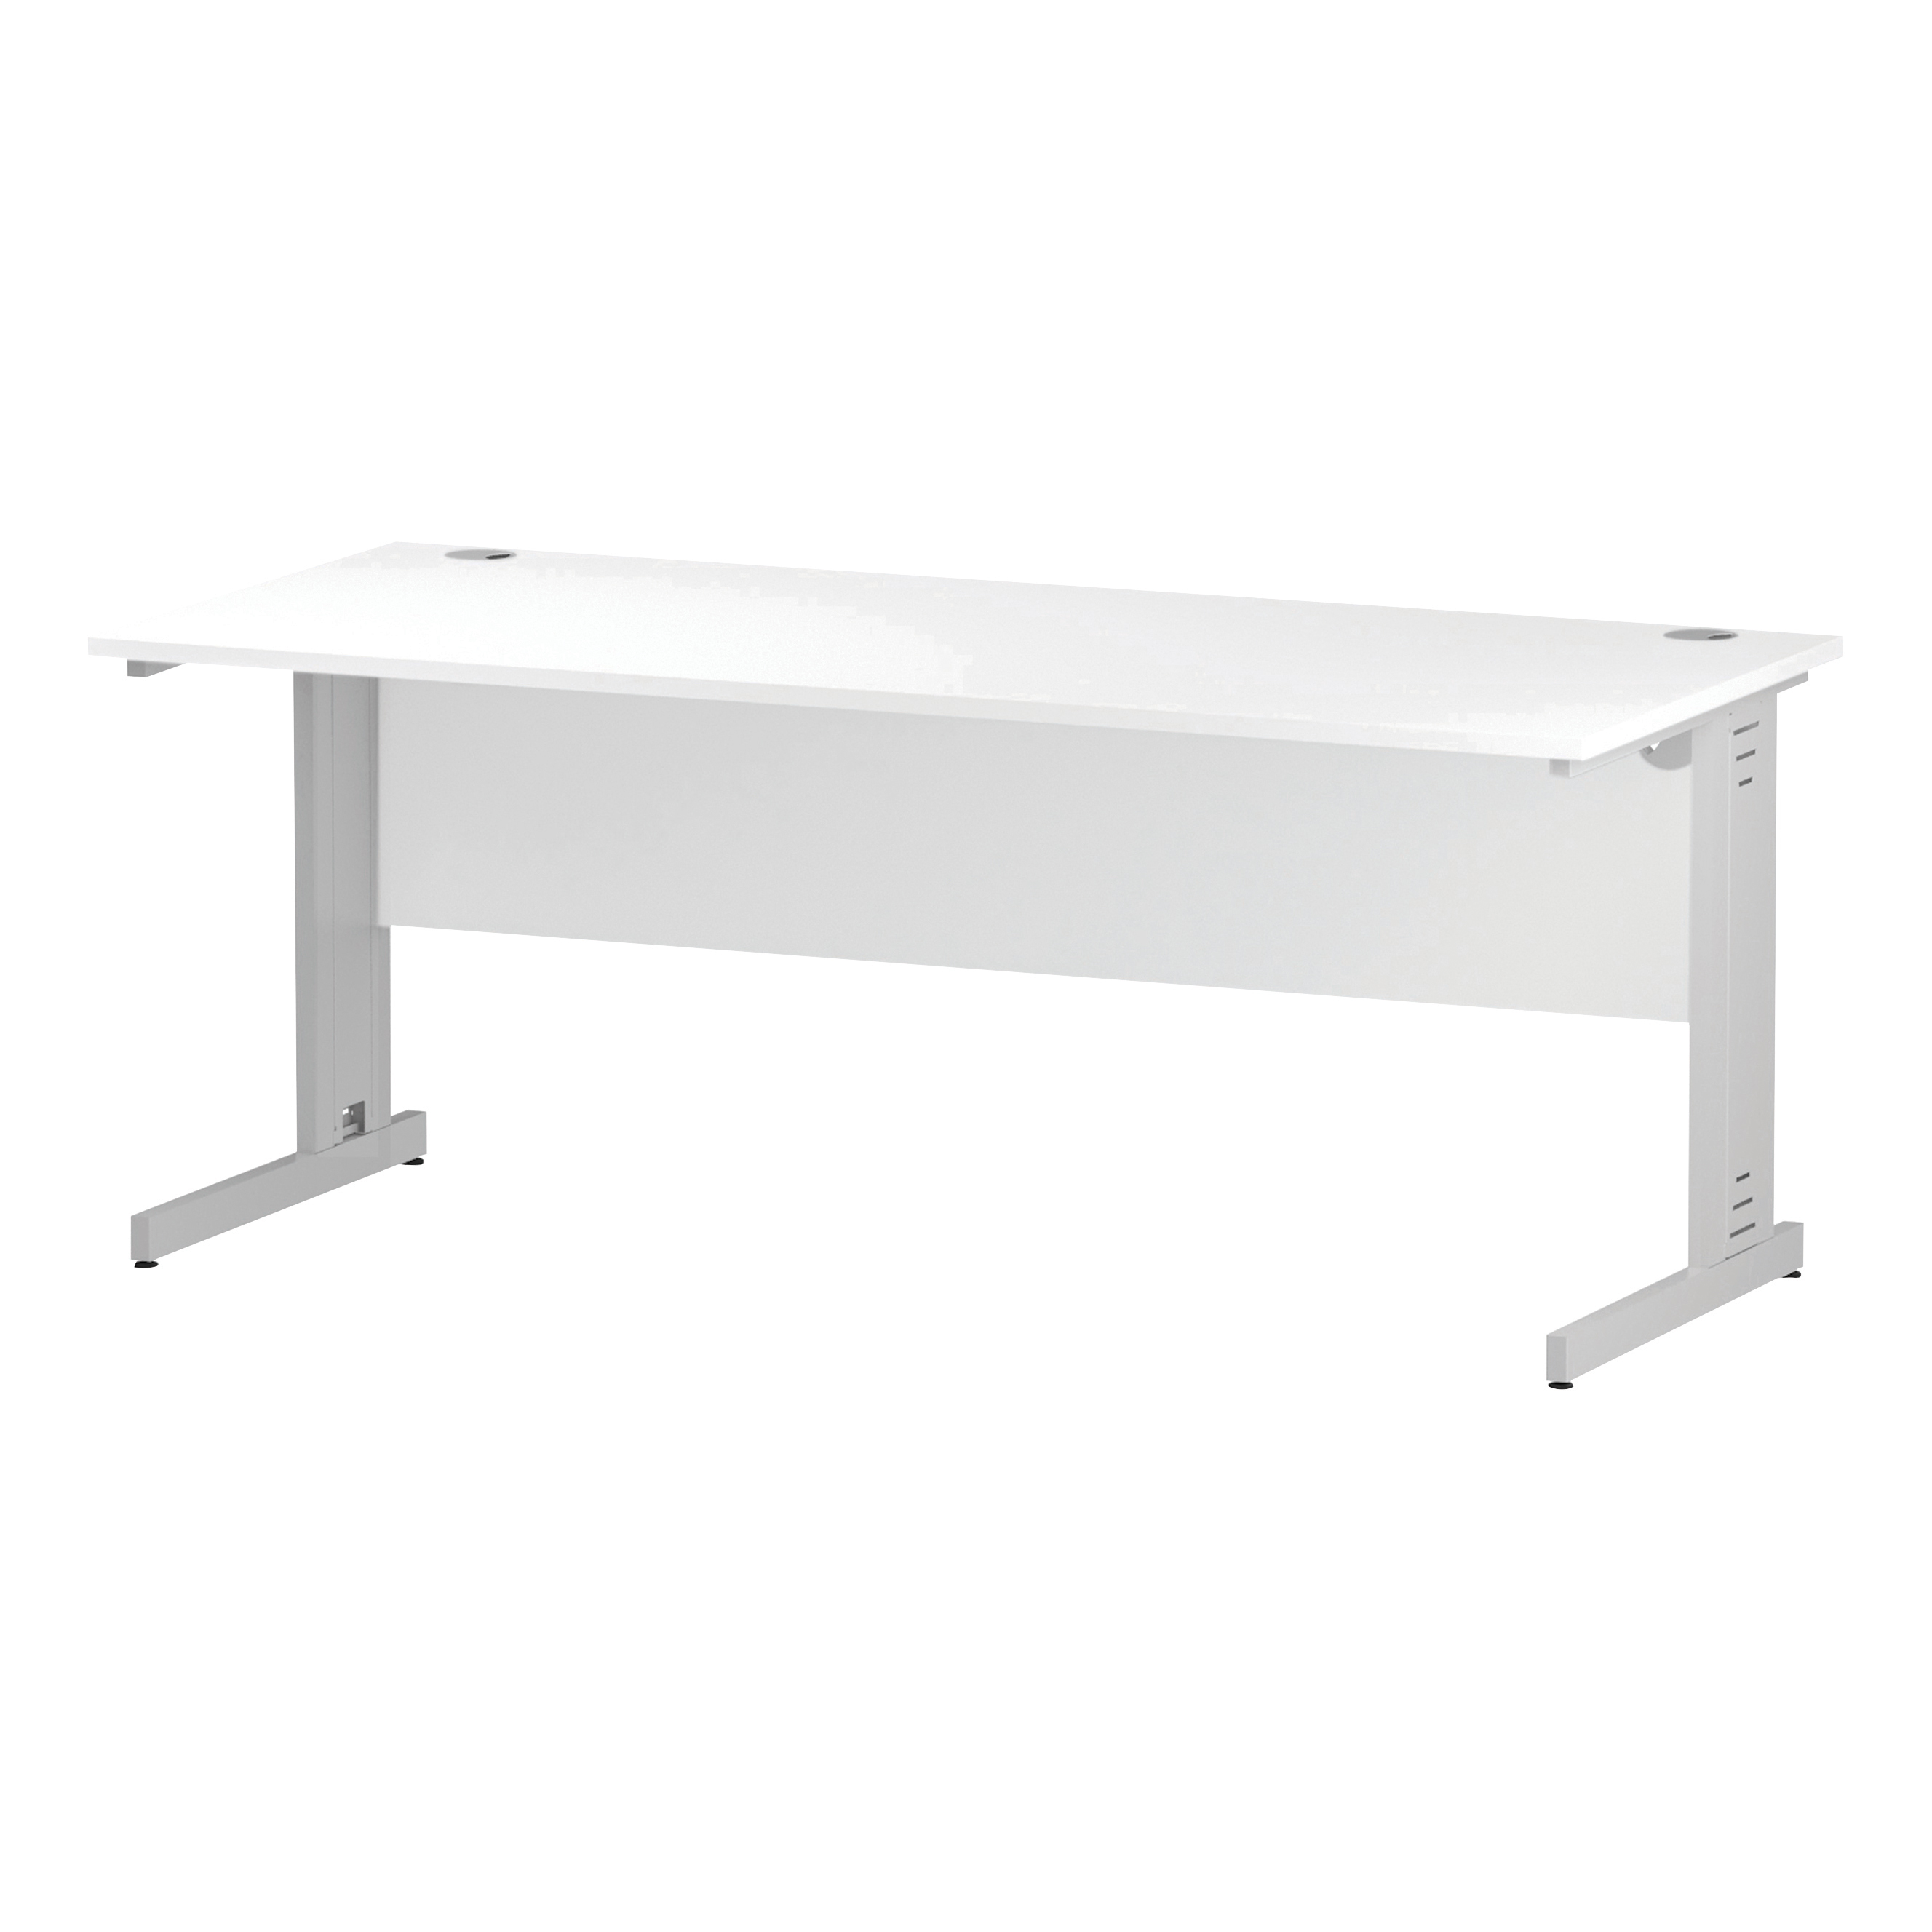 Trexus Rectangular Desk White Cable Managed Leg 1800x800mm White Ref I002274